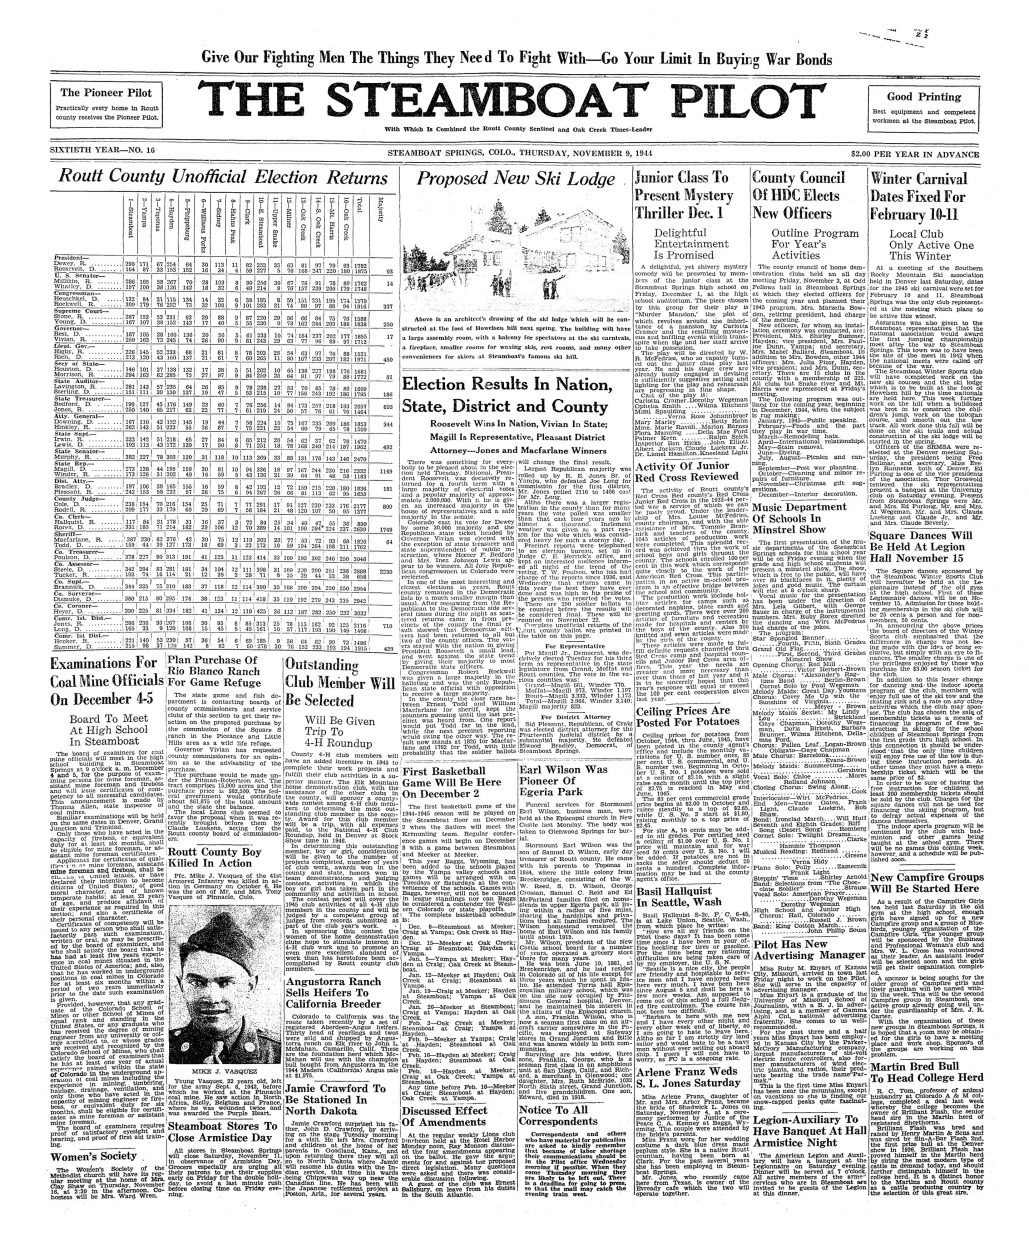 Front page of 1944 Steamboat Pilot